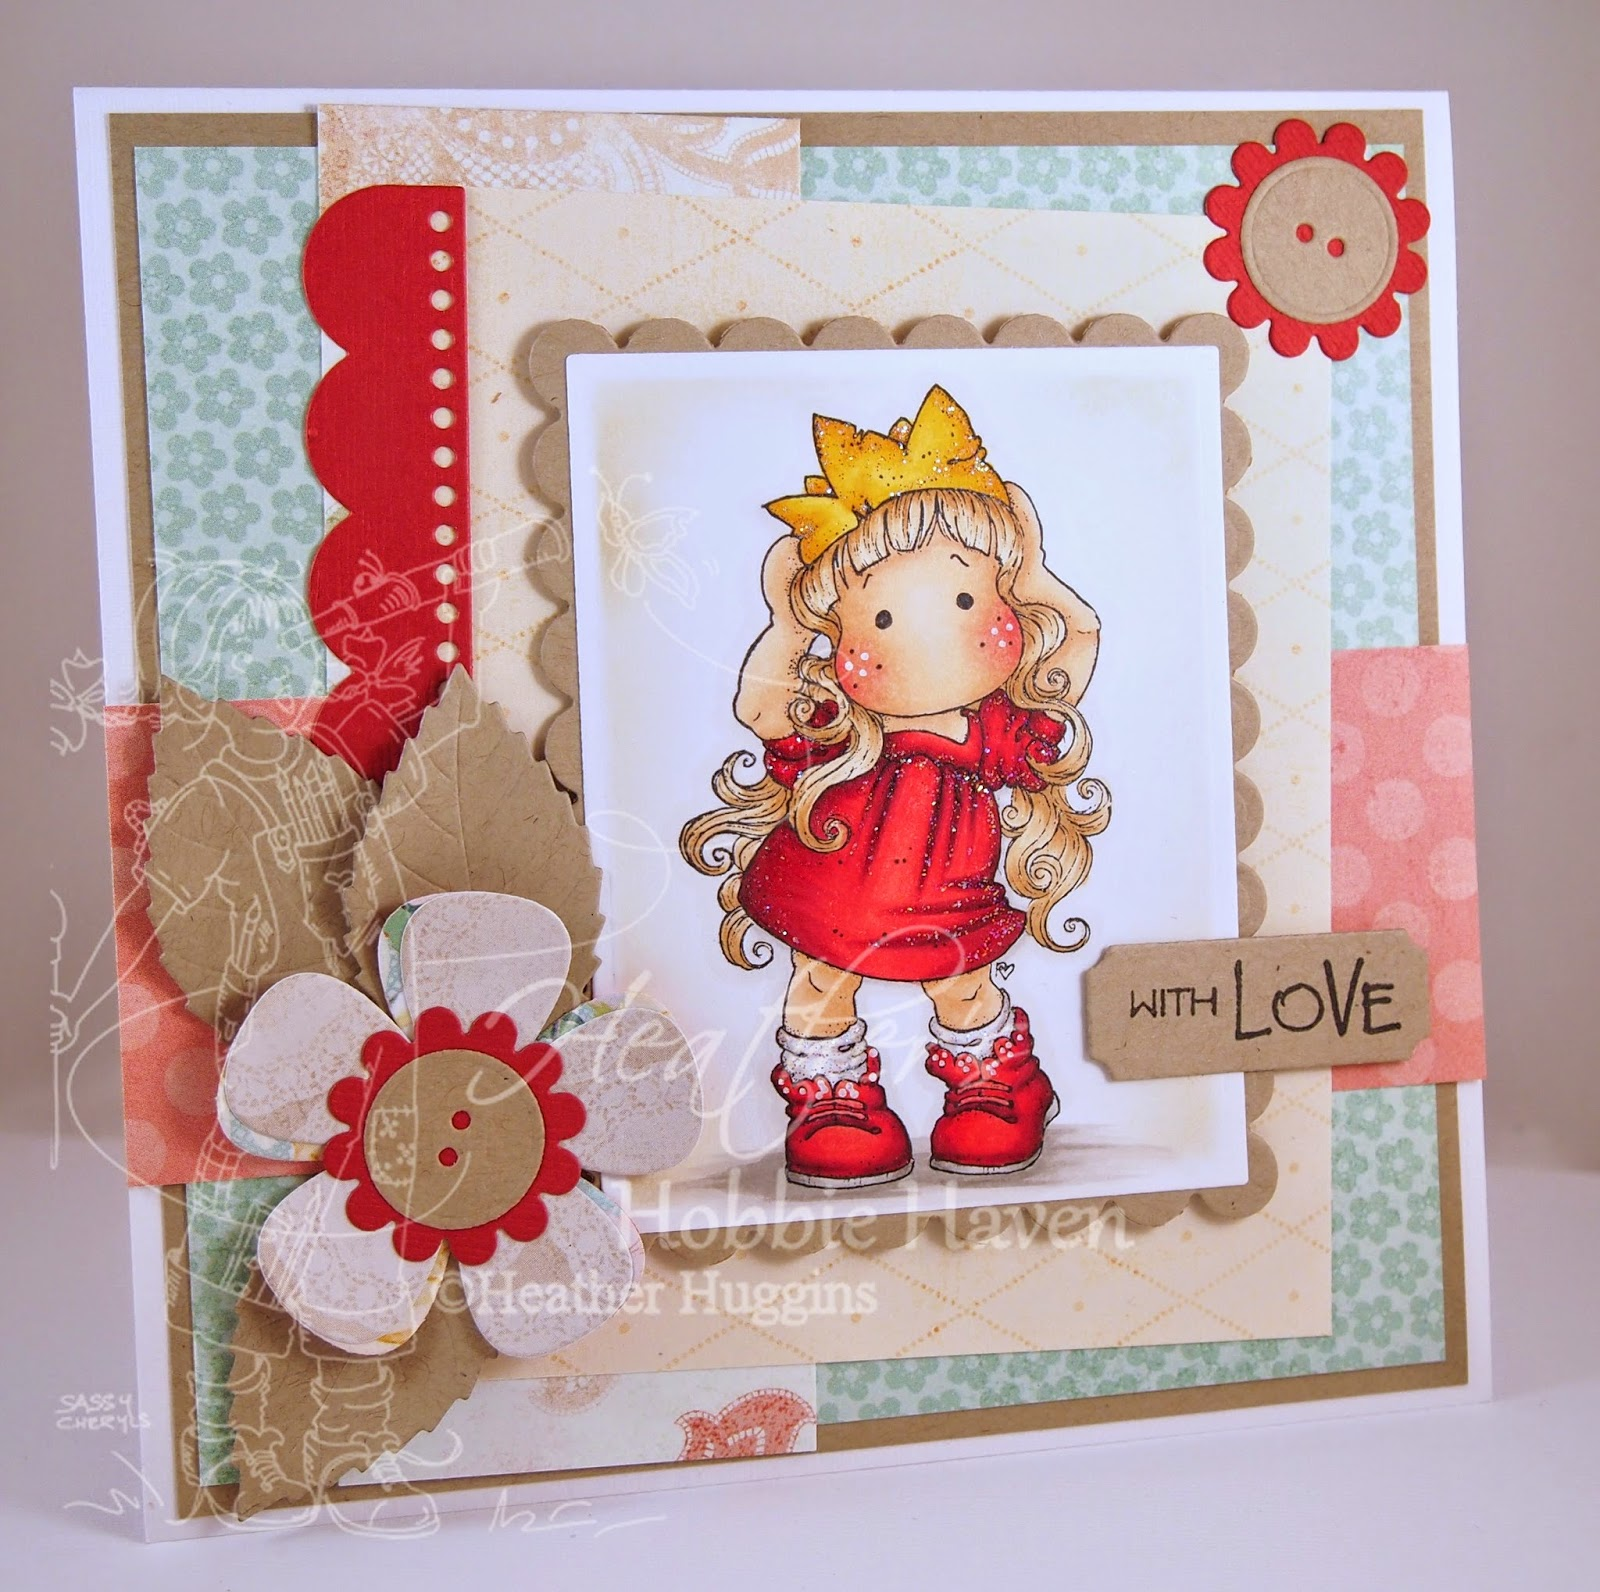 Heather's Hobbie Haven - Princess Party Tilda Card Kit